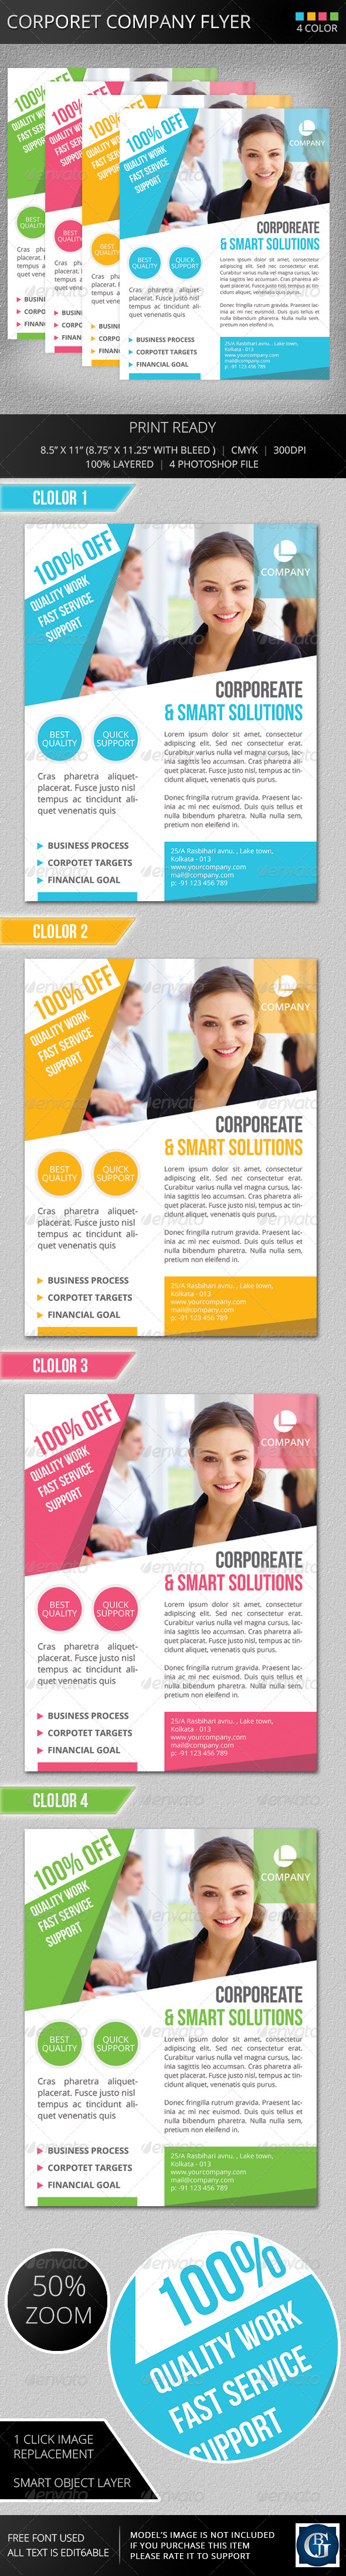 GraphicRiver Corporate Company Flyer 5670855